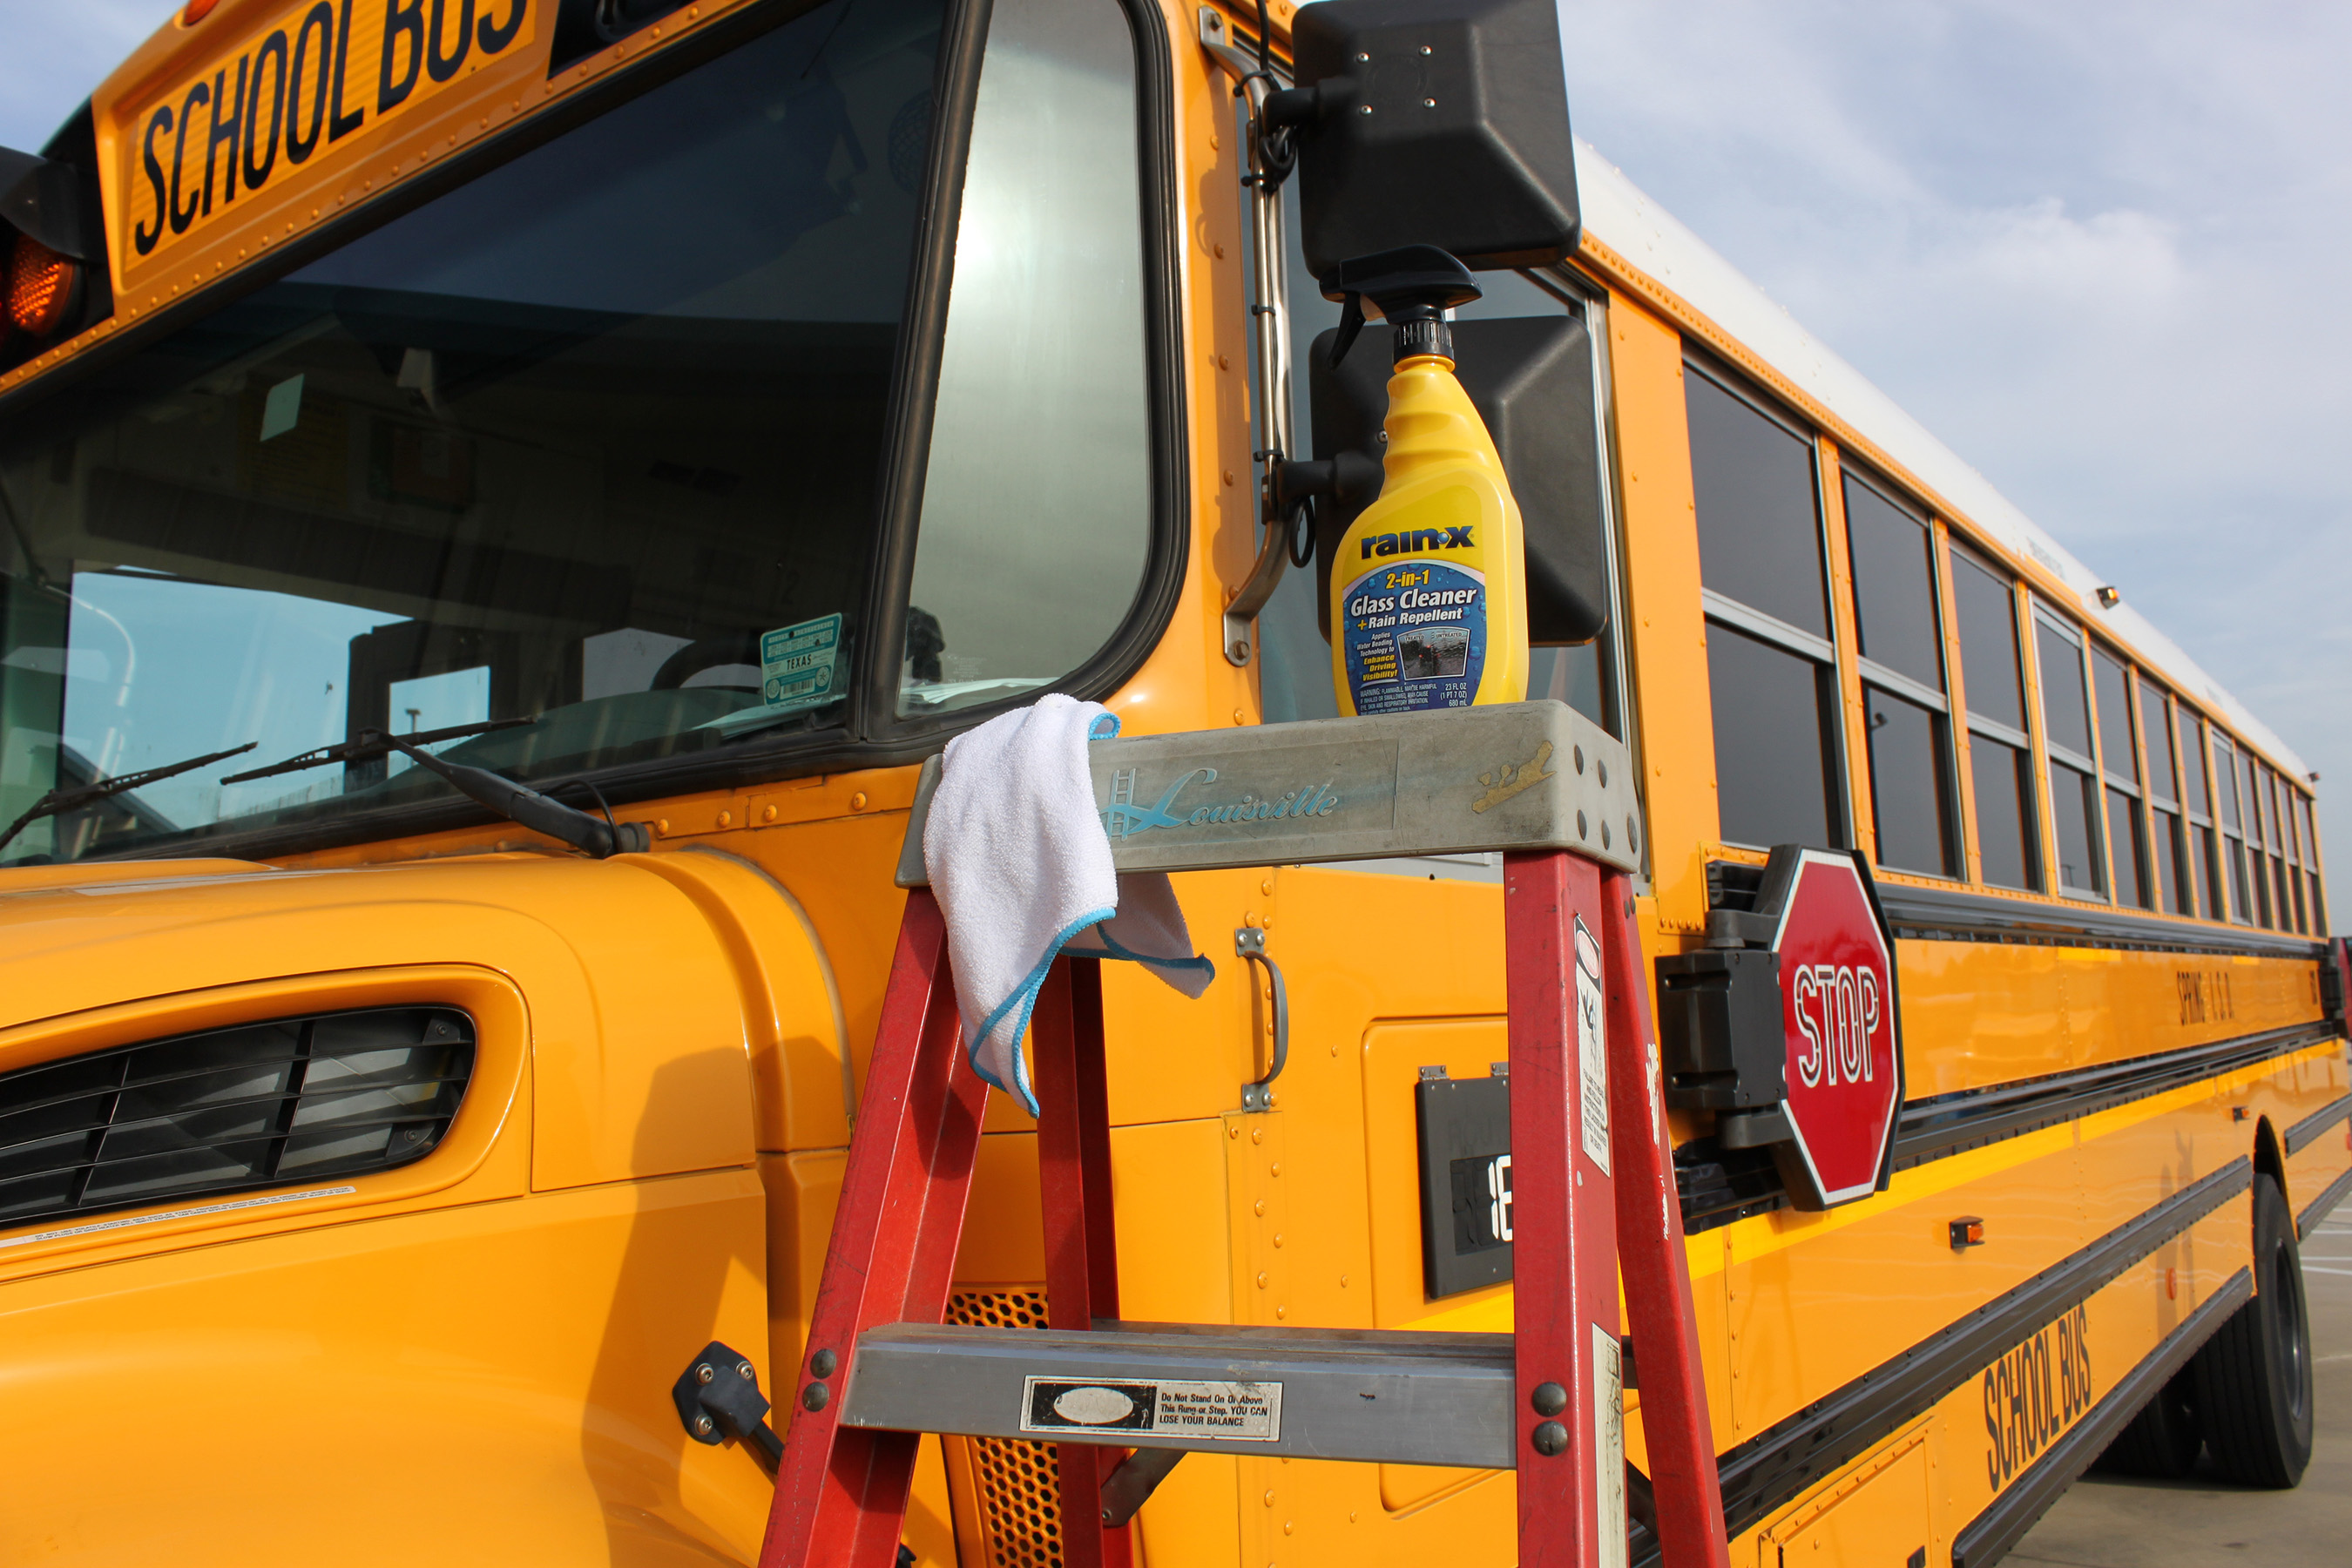 95 percent of parents would use or encourage the use of a water-repellent windshield product like Rain‑X(R) 2-in-1 Glass Cleaner with Rain Repellent on school buses and in carpools.